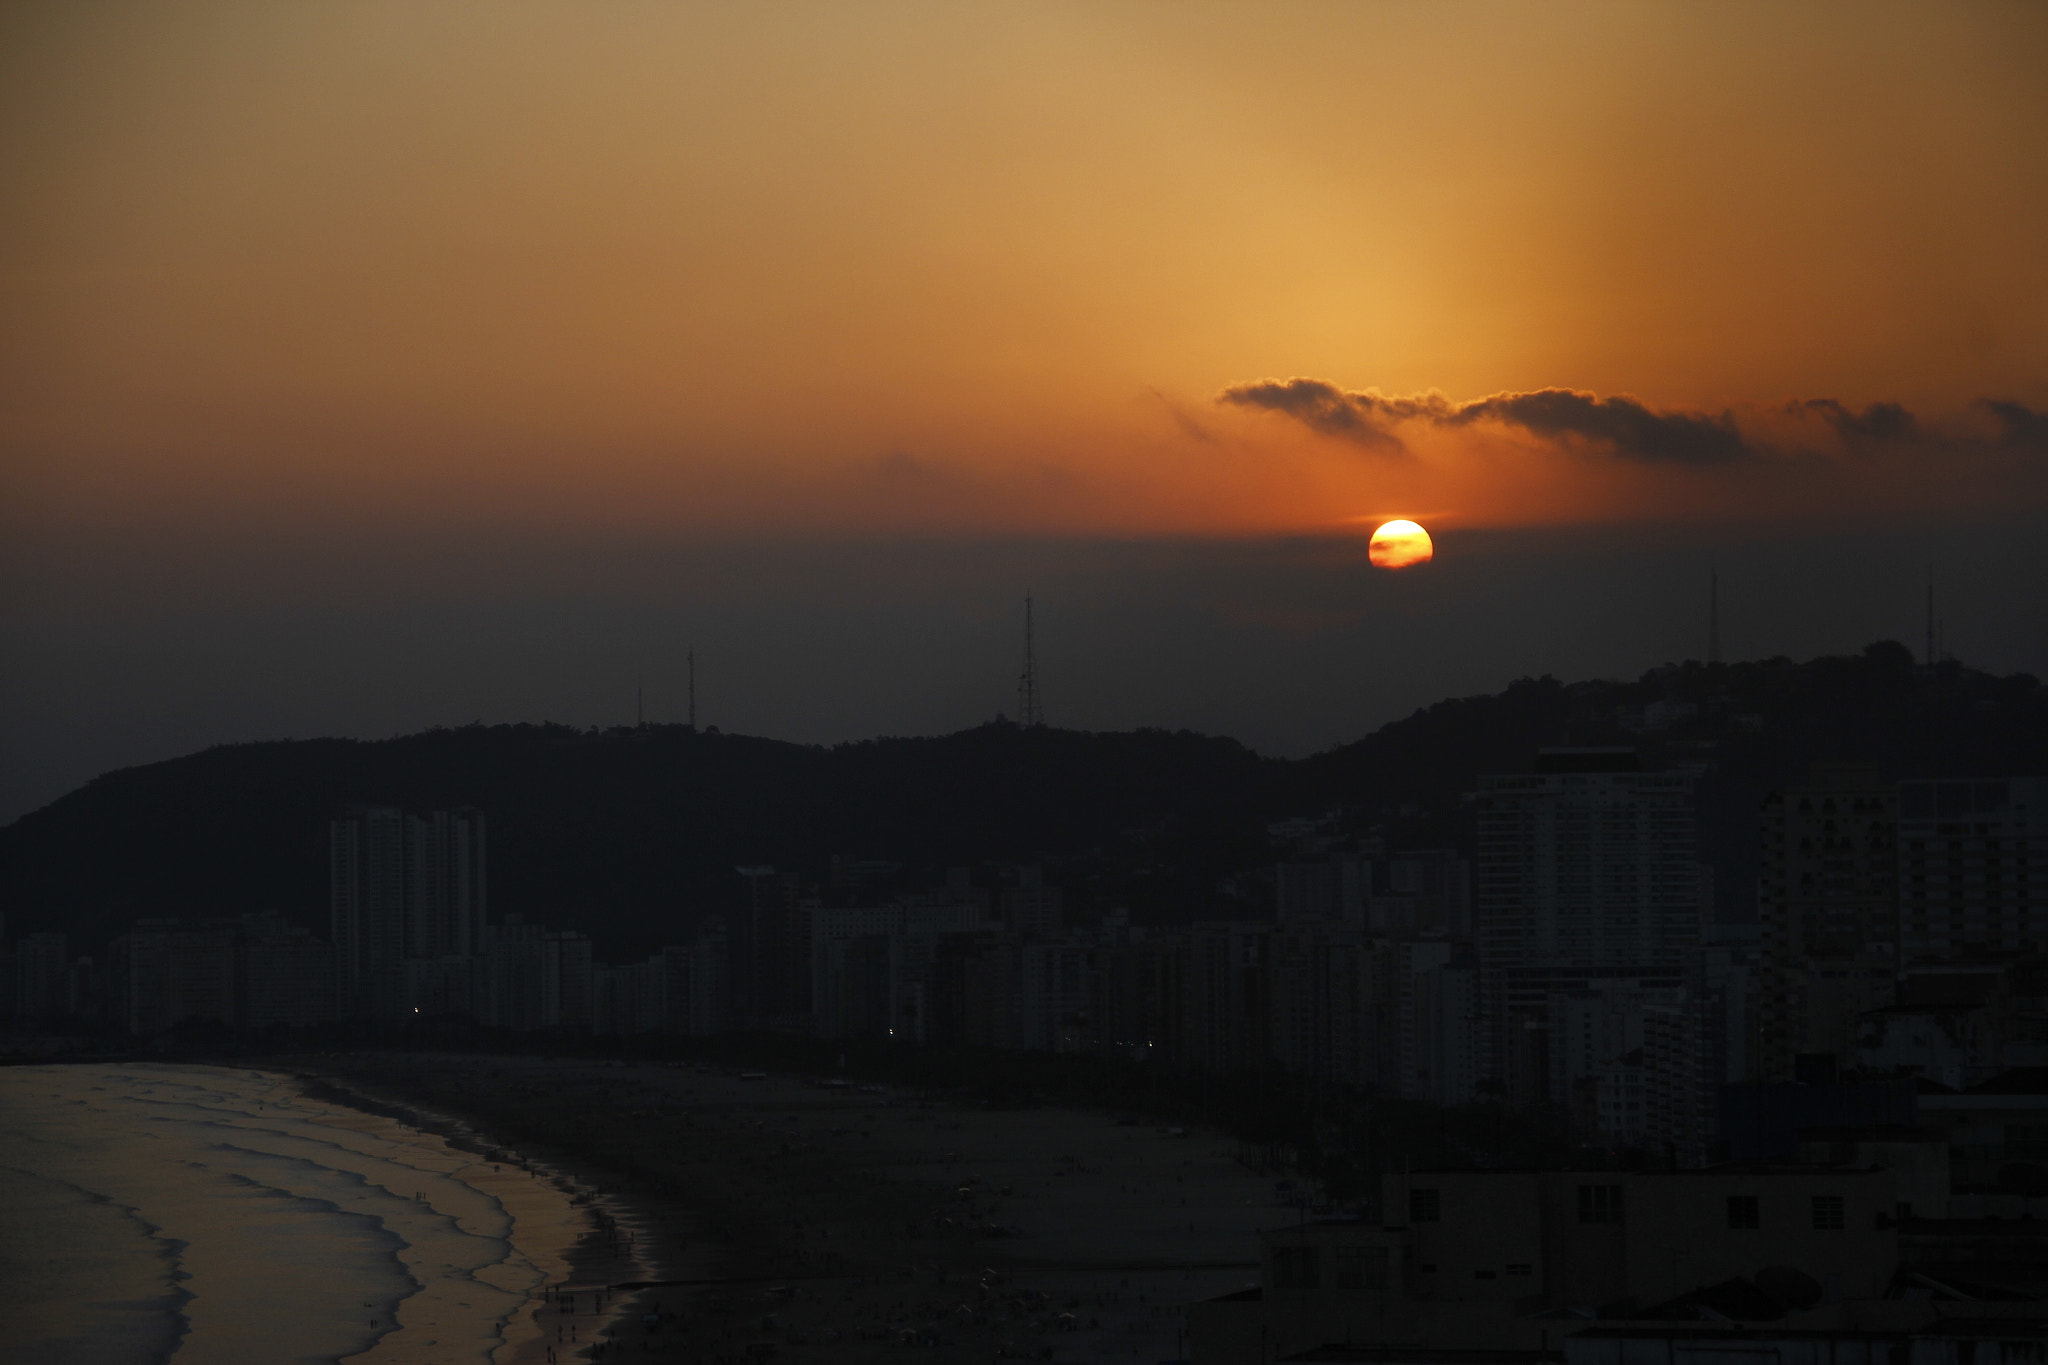 Photograph por do sol by Daniel Antunes on 500px